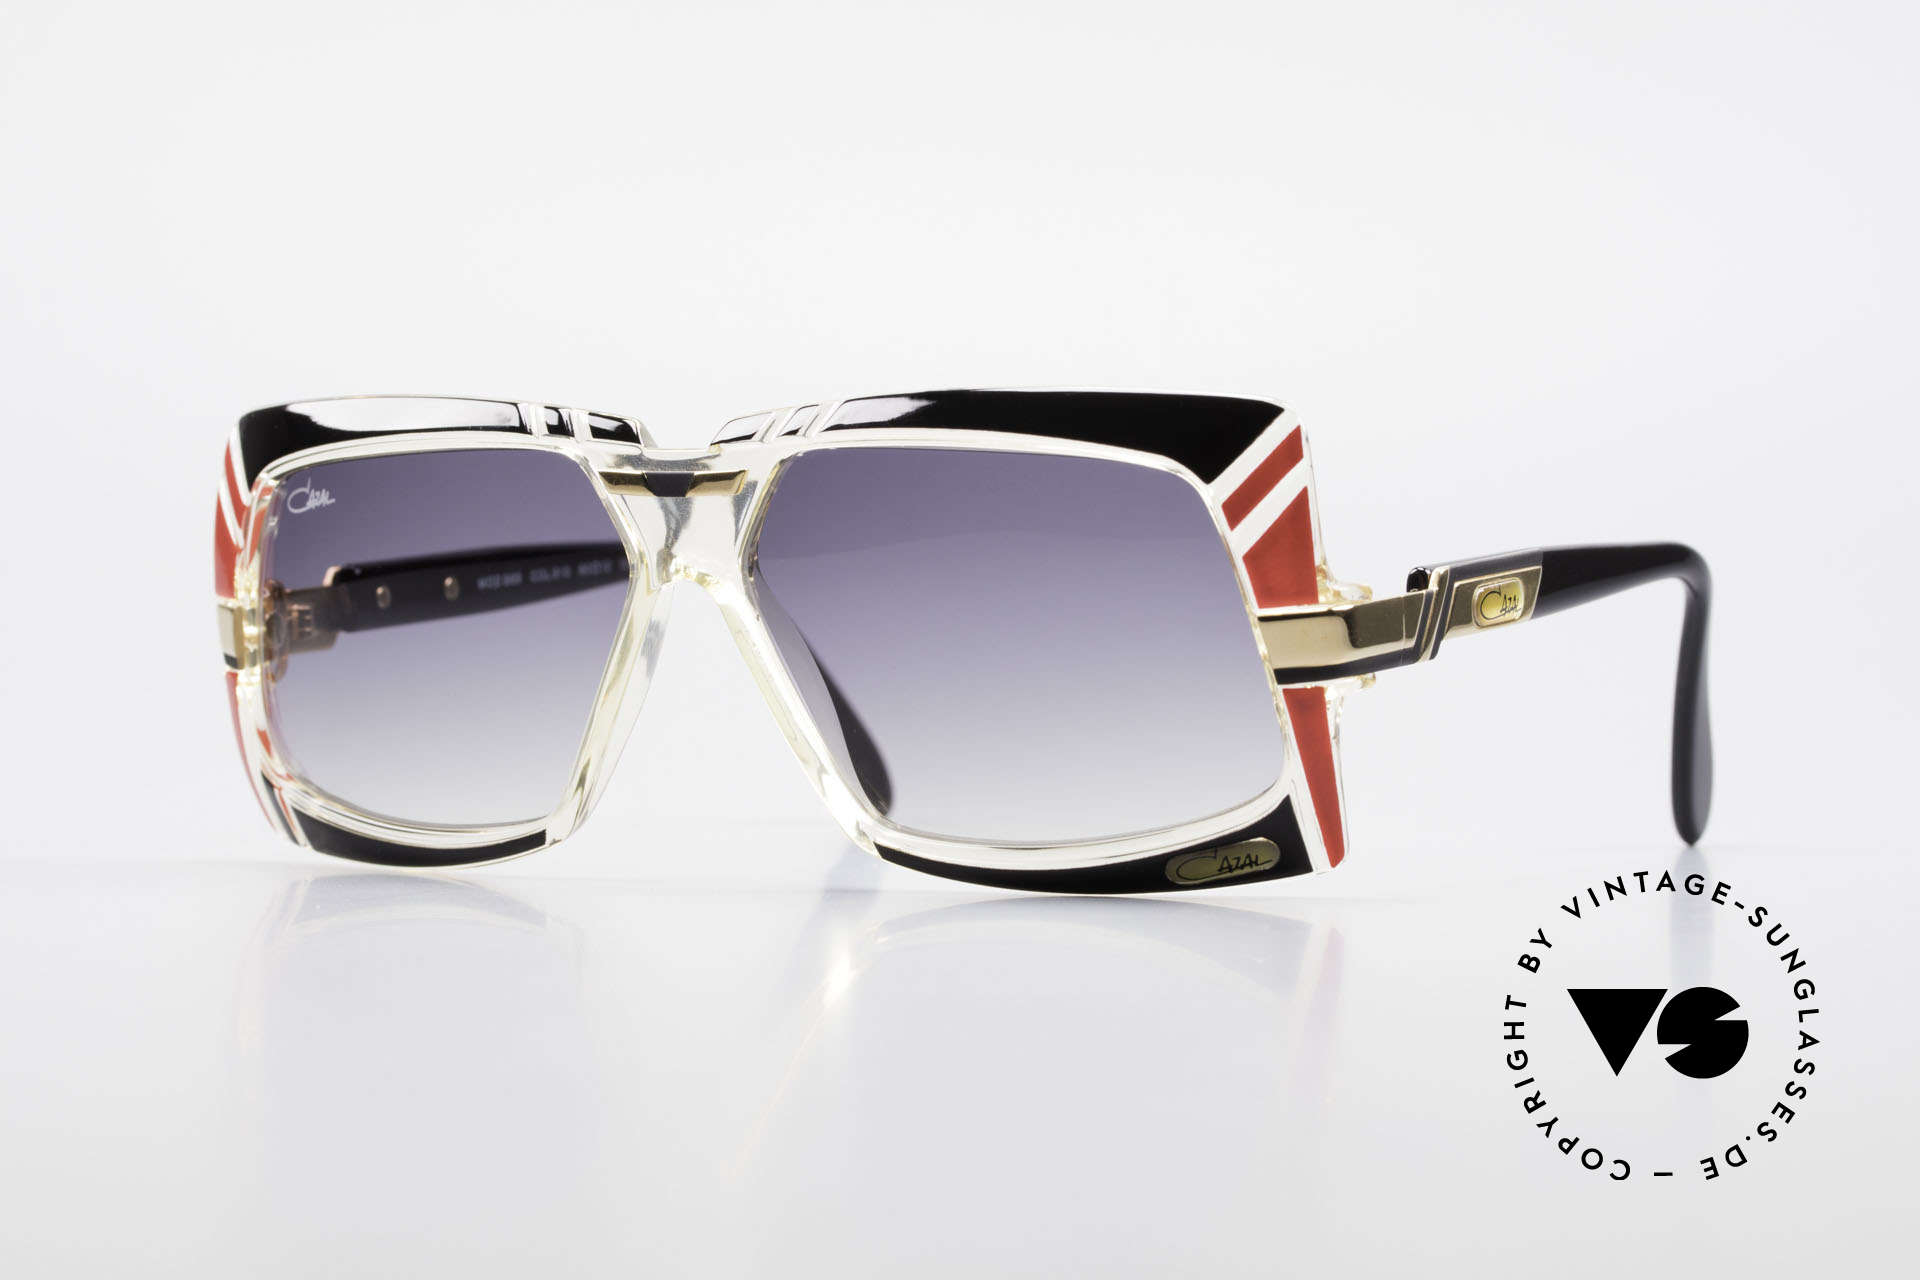 Cazal 869 Old 80's West Germany Shades, extraordinary designer sunglasses from 1989/90, Made for Men and Women